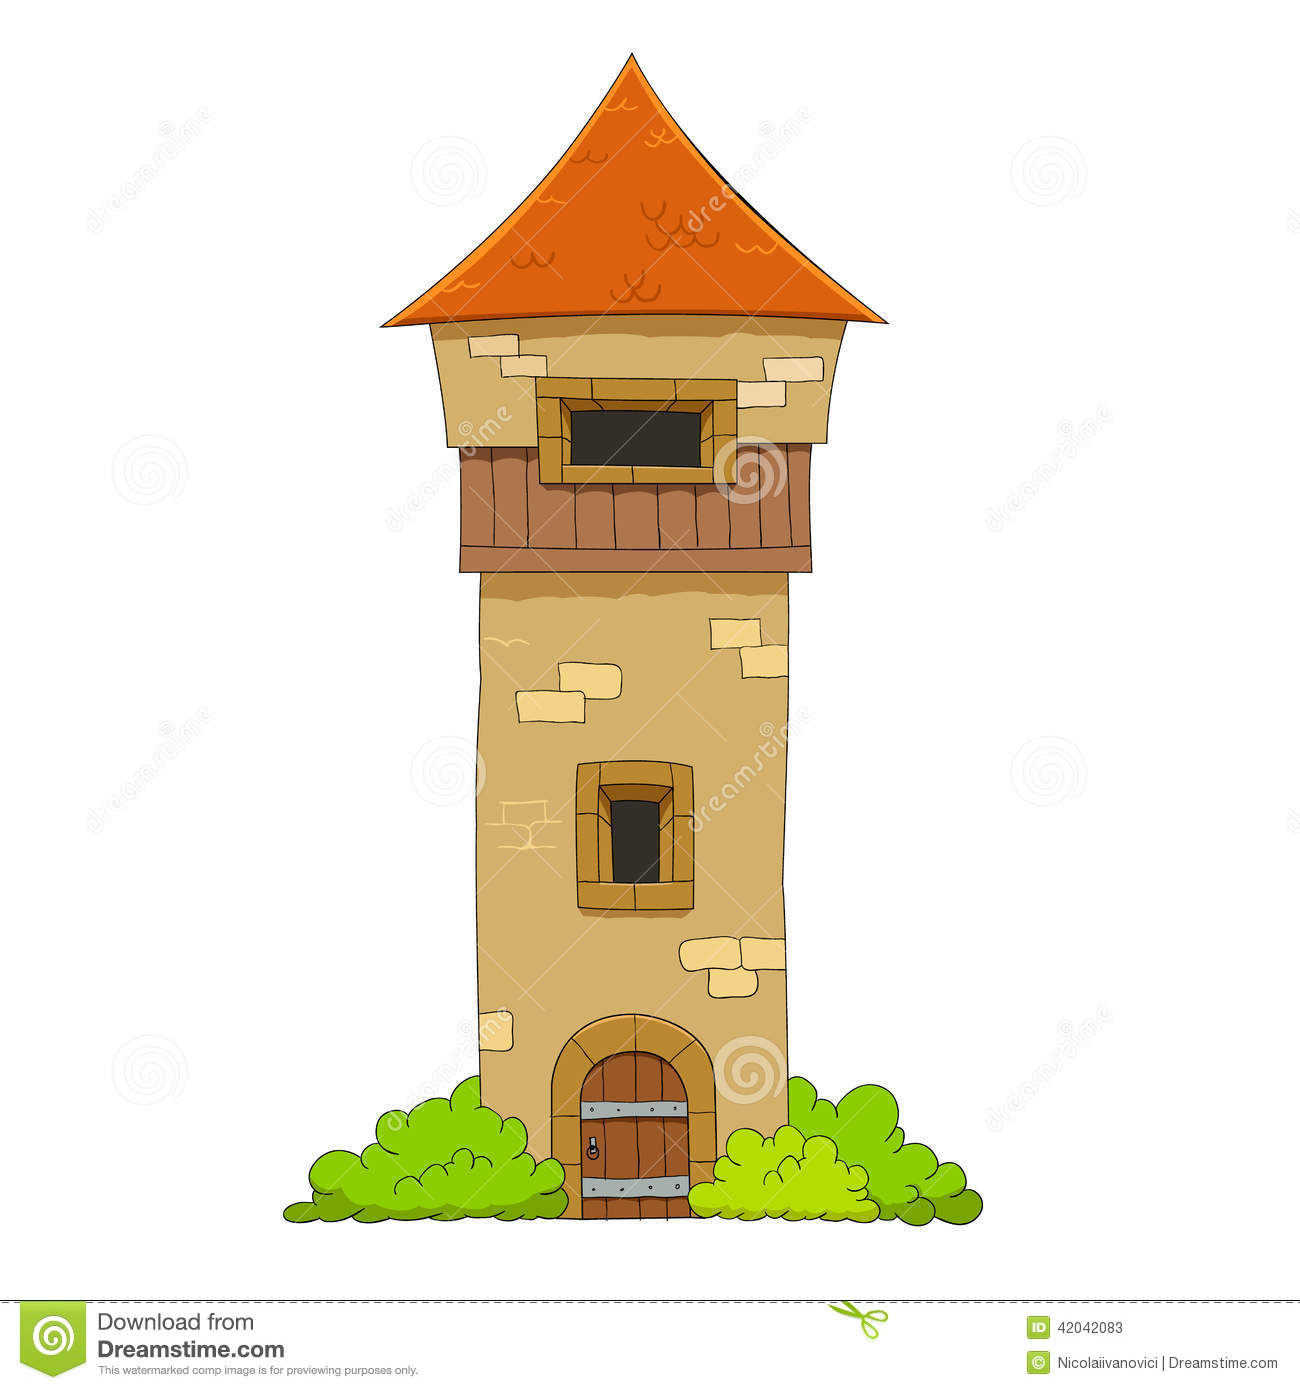 old defense tower stock vector illustration of colorful website icon vector png website icon vector ai